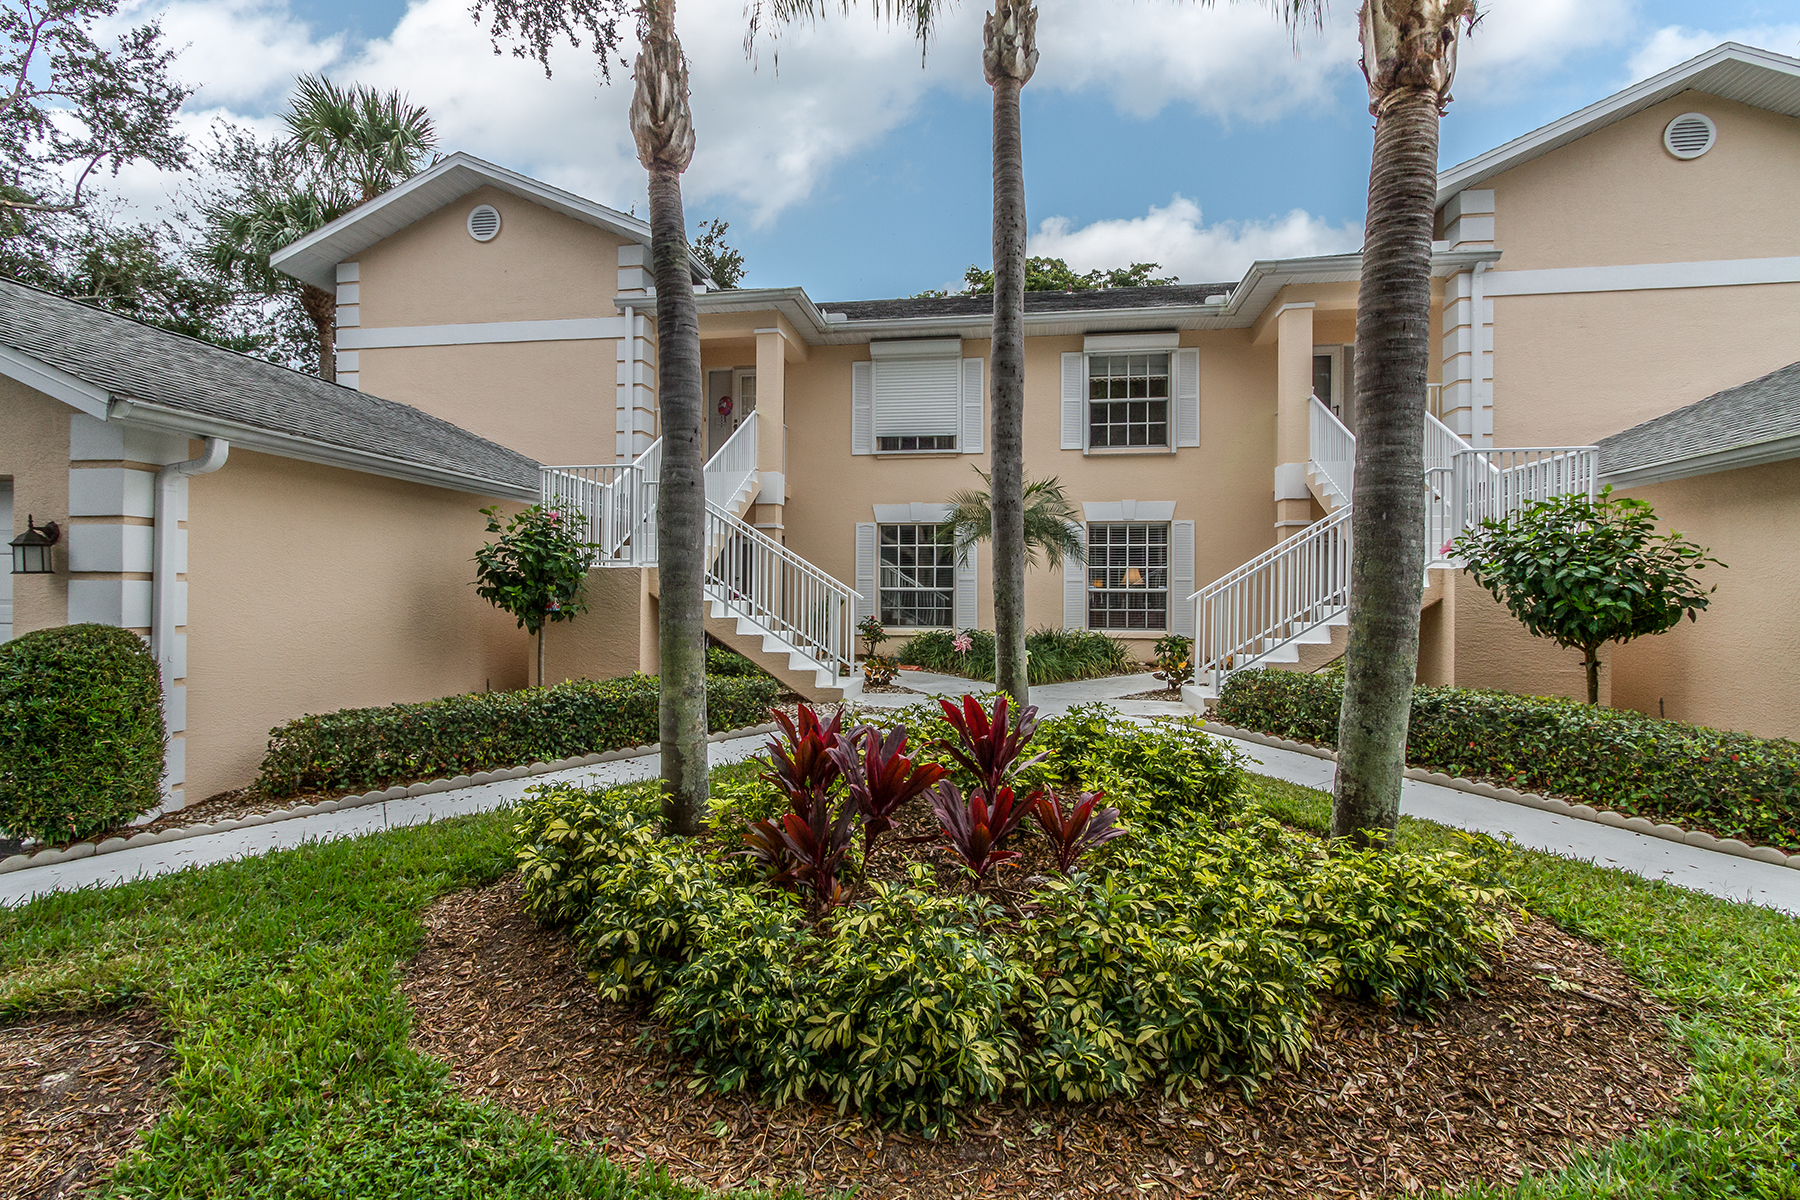 Condominium for Rent at WIGGINS LAKES AND PRESERVES 651 Wiggins Lake Dr 102, Naples, Florida 34110 United States